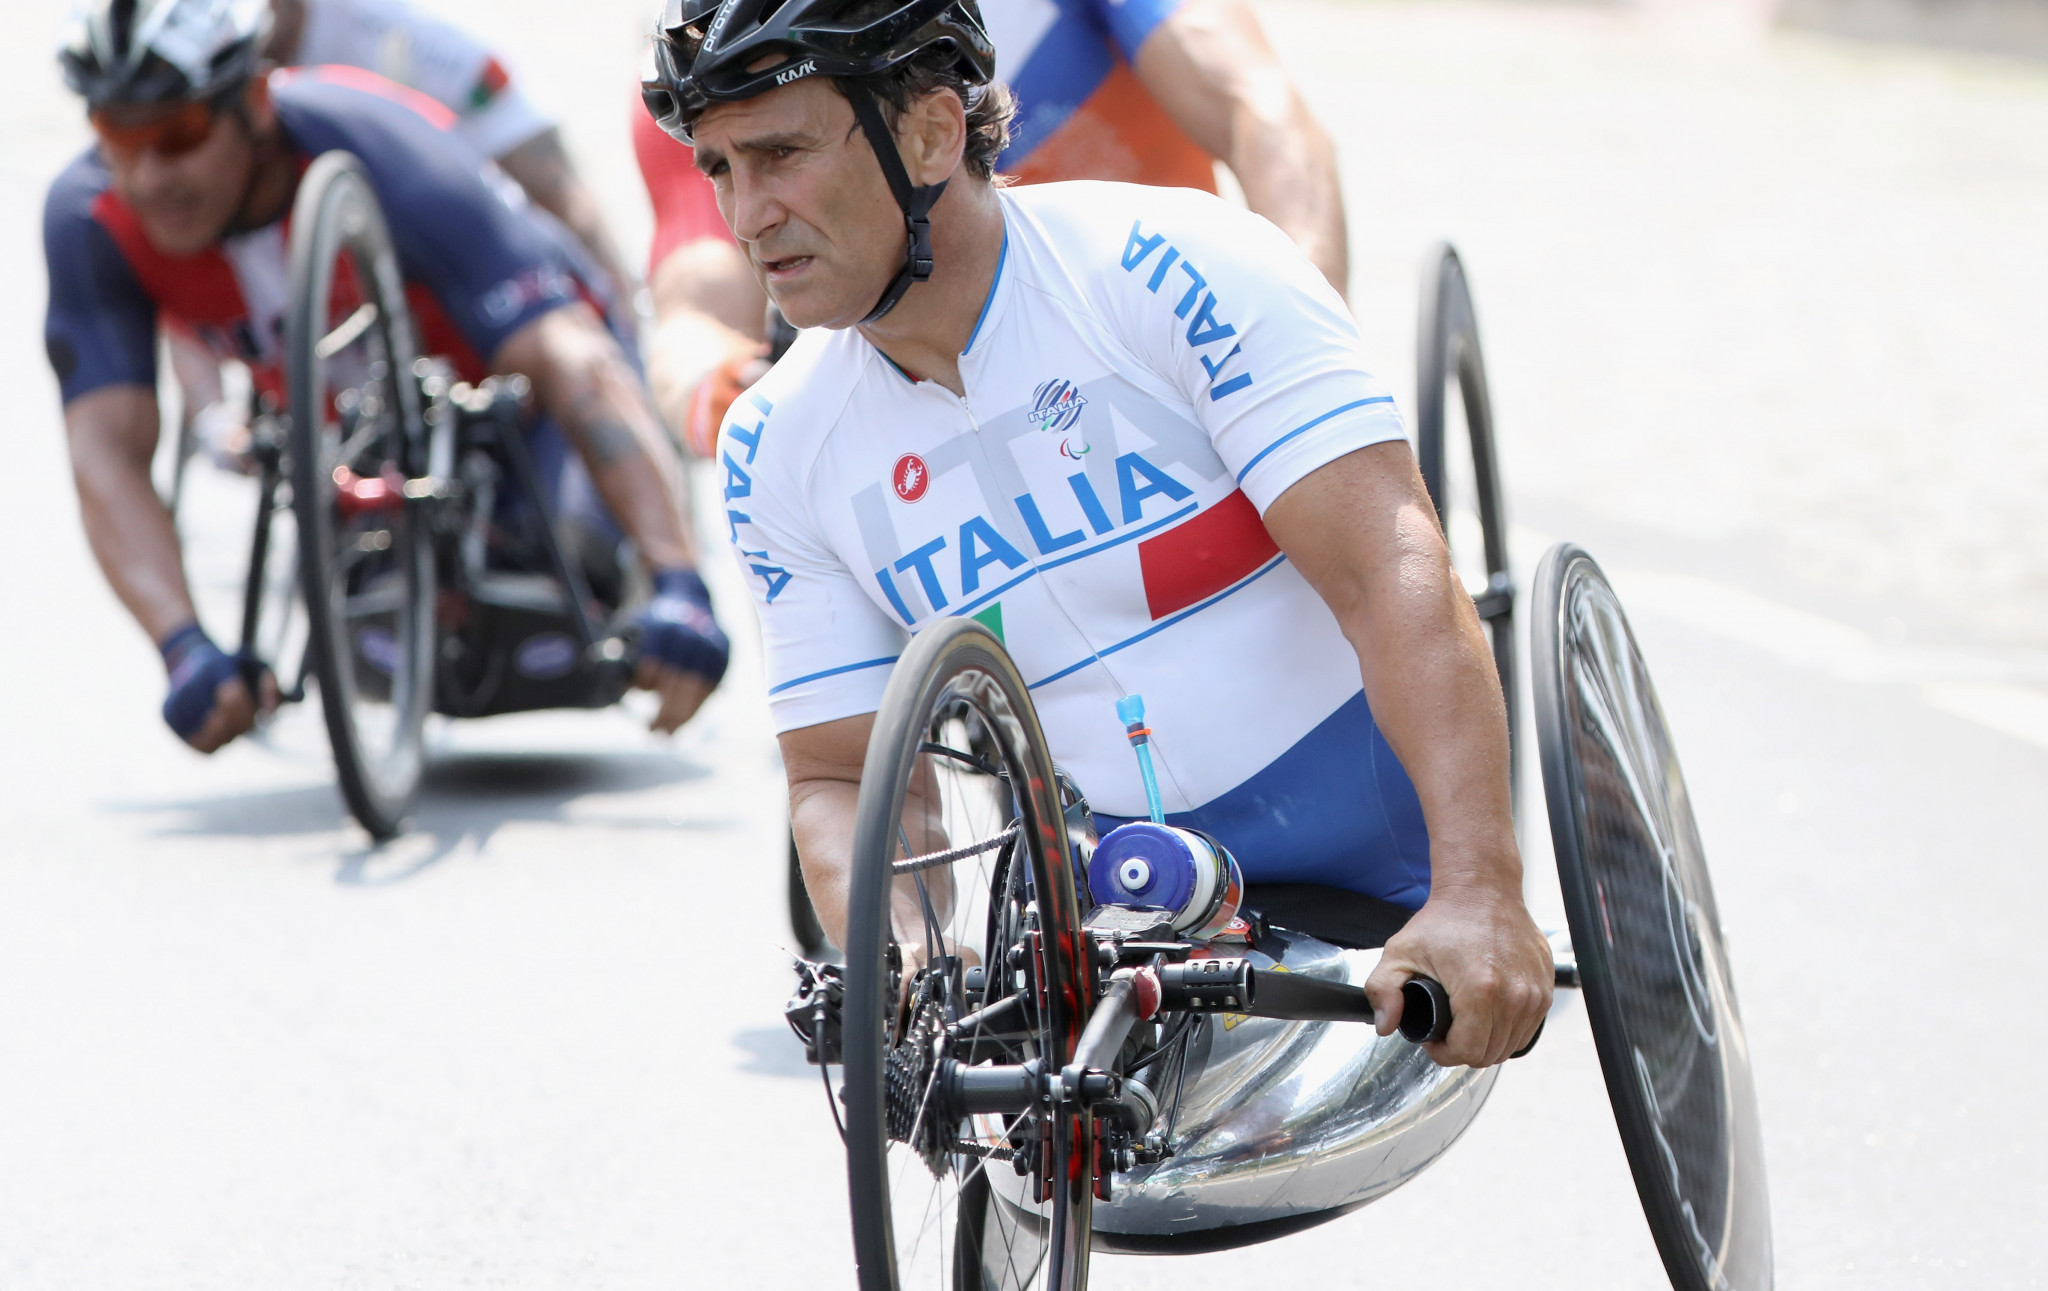 Paralympic champion Zanardi among Italy's four gold medallists at UCI Para-cycling Road World Championships